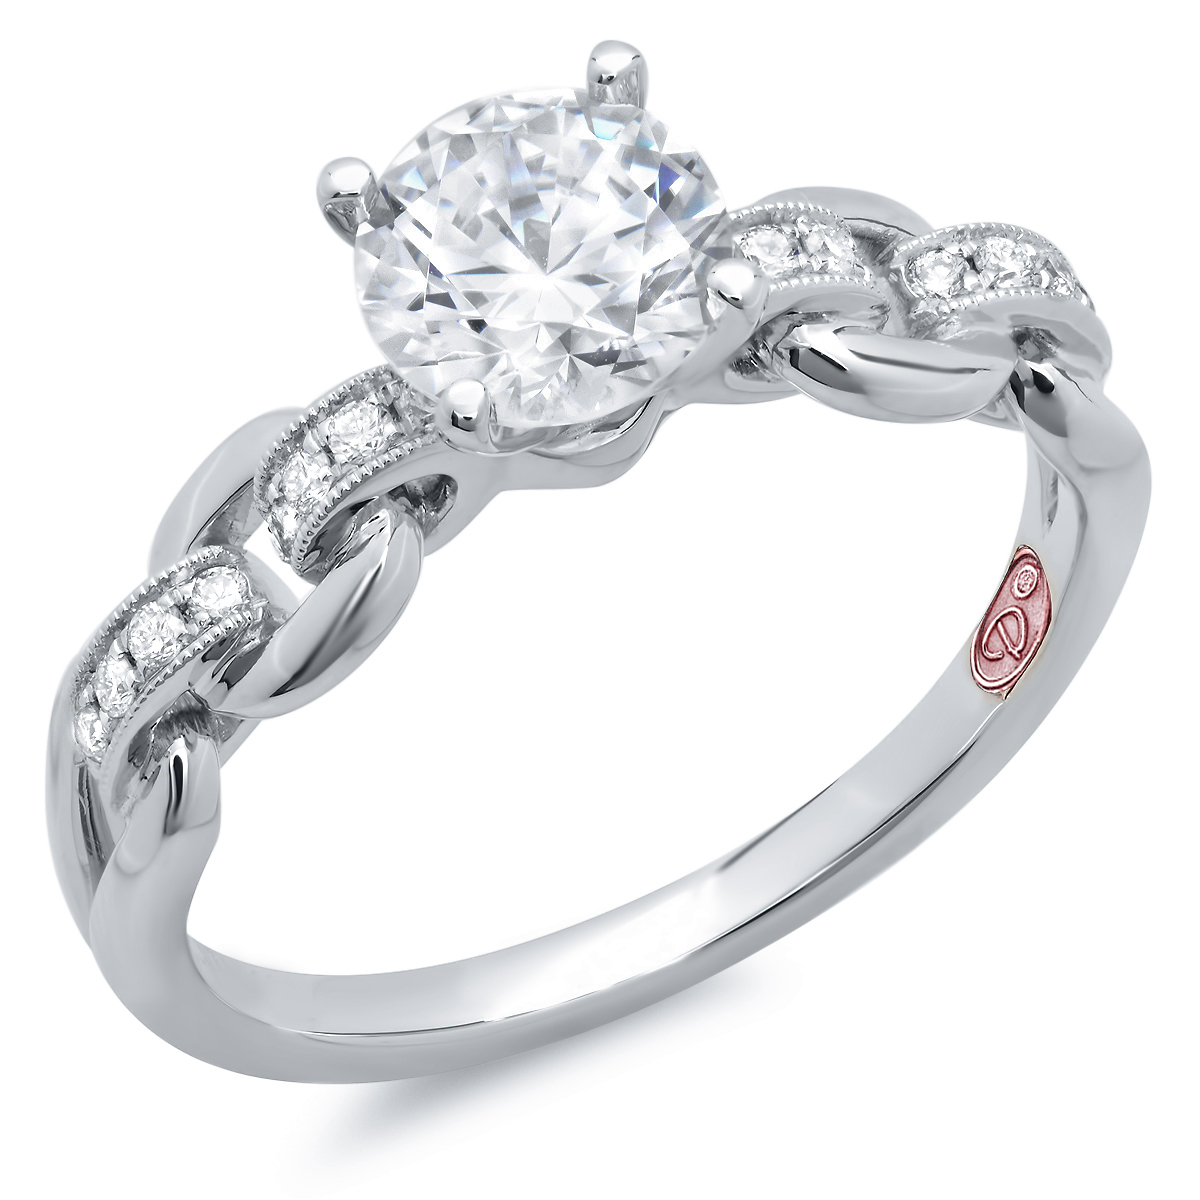 Designer Engagement Rings In Destin